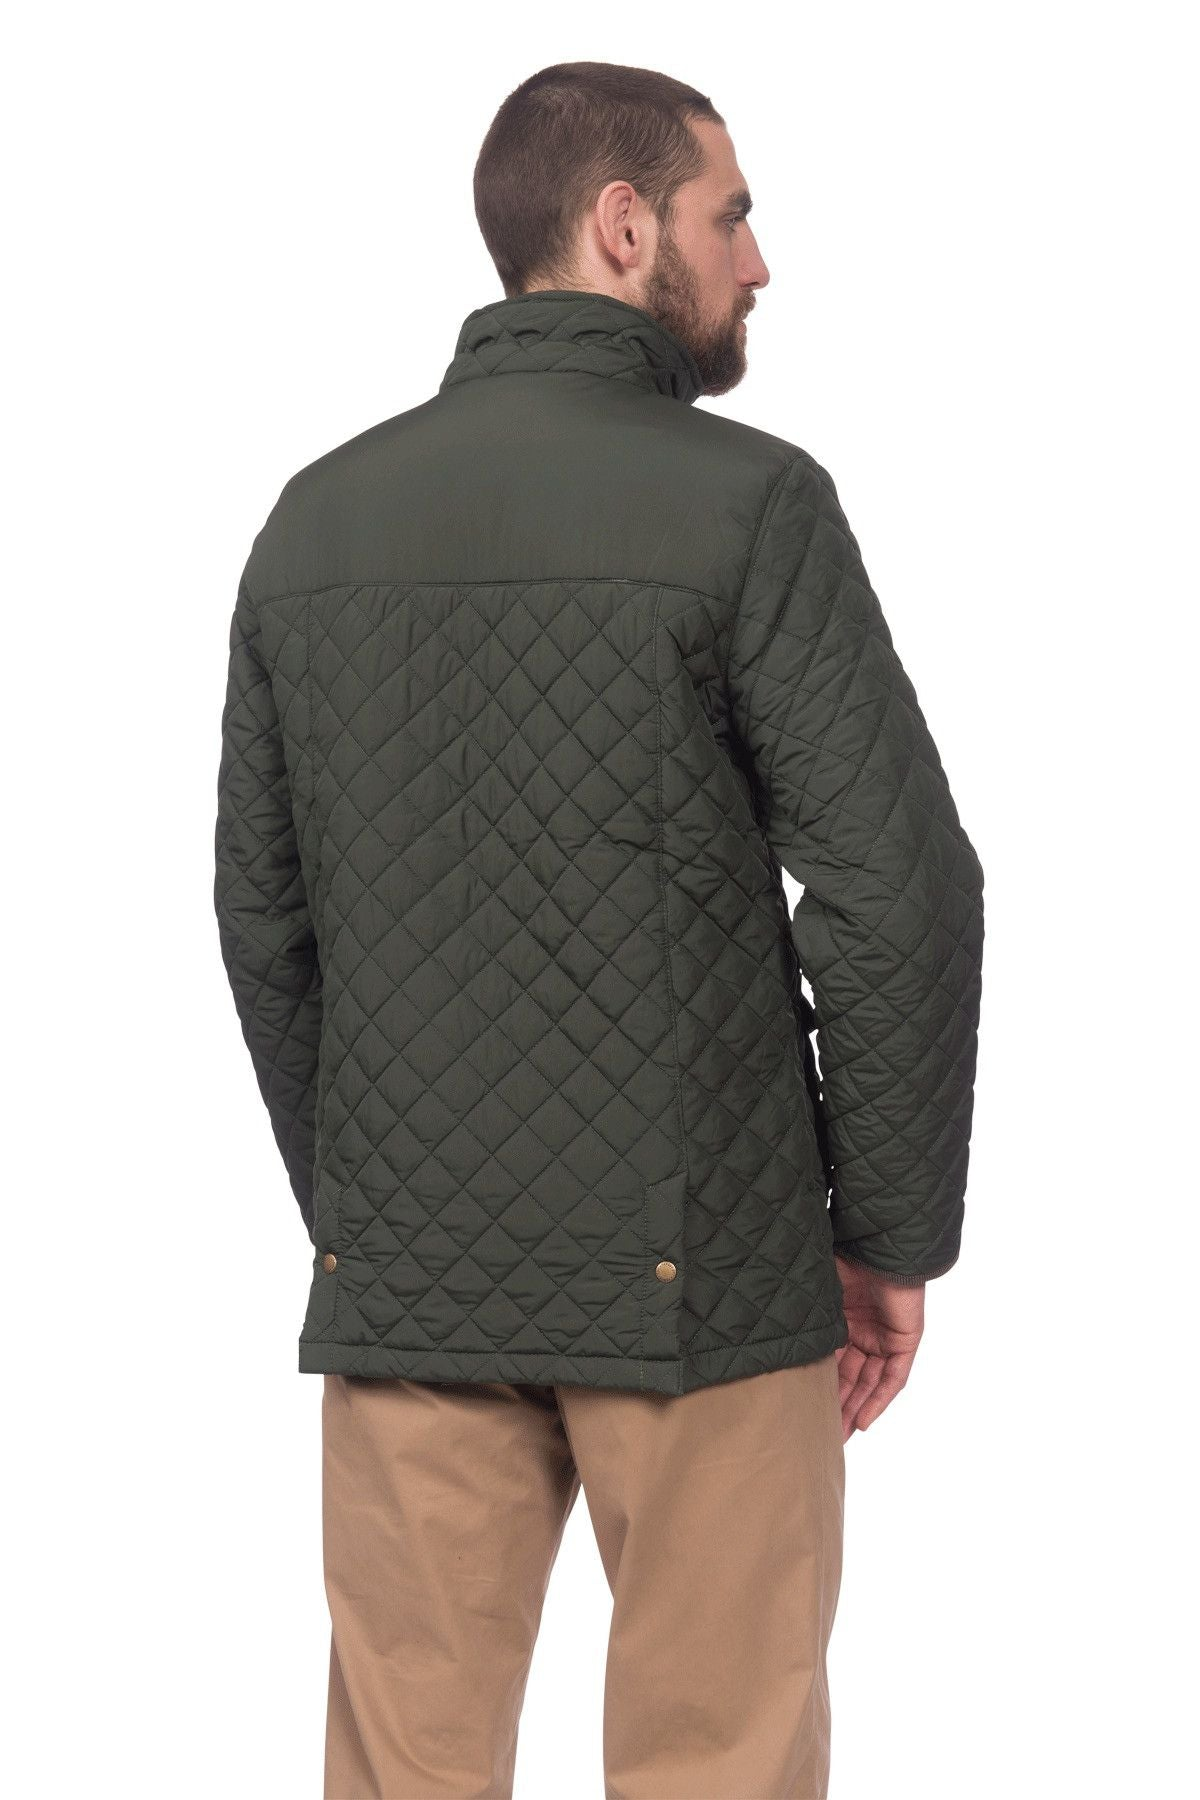 Target Dry | Windsor Quilted Windproof Insulated Coat for Men : mens lightweight quilted jacket - Adamdwight.com